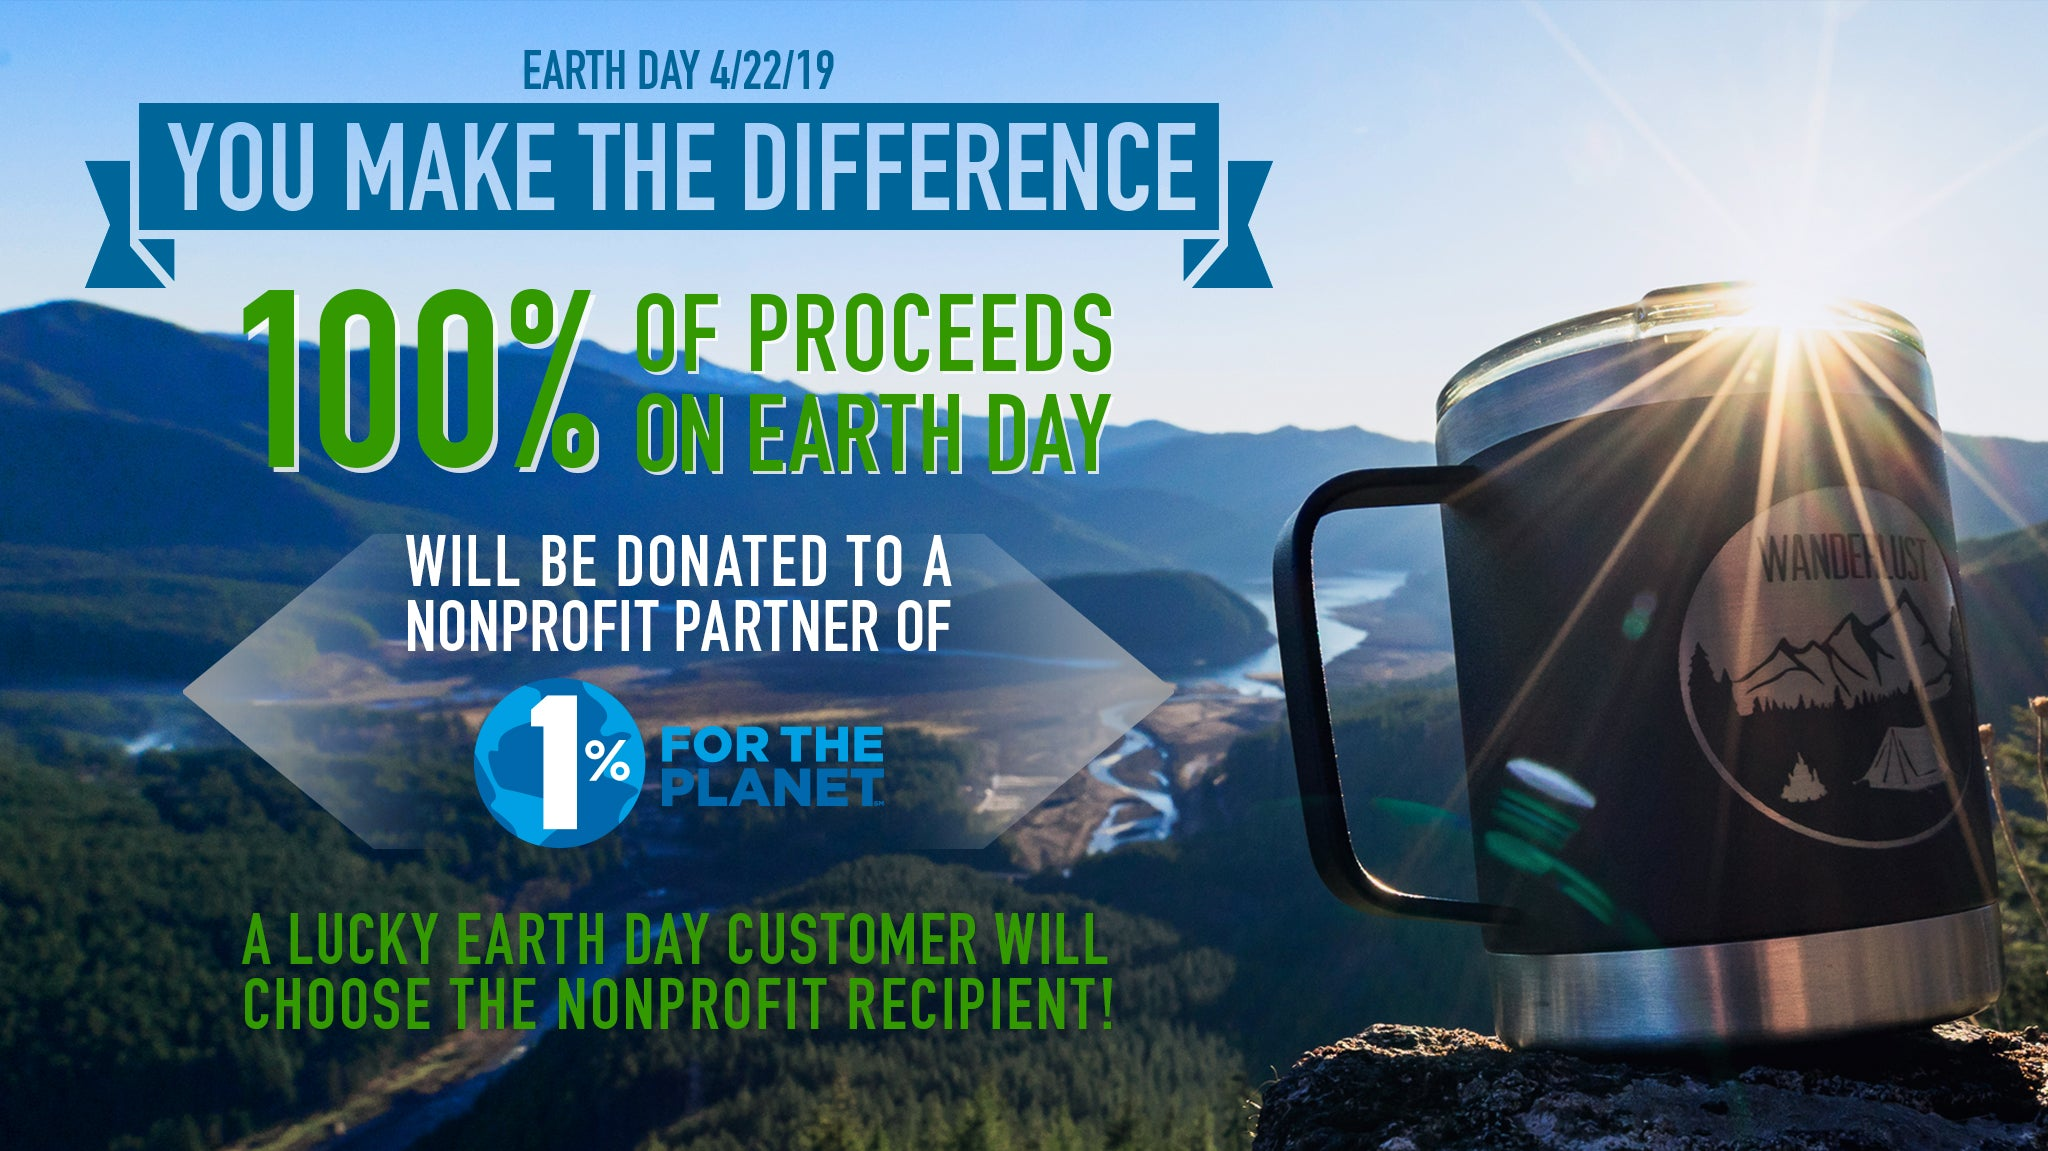 tempercraft earth day 2019 promo